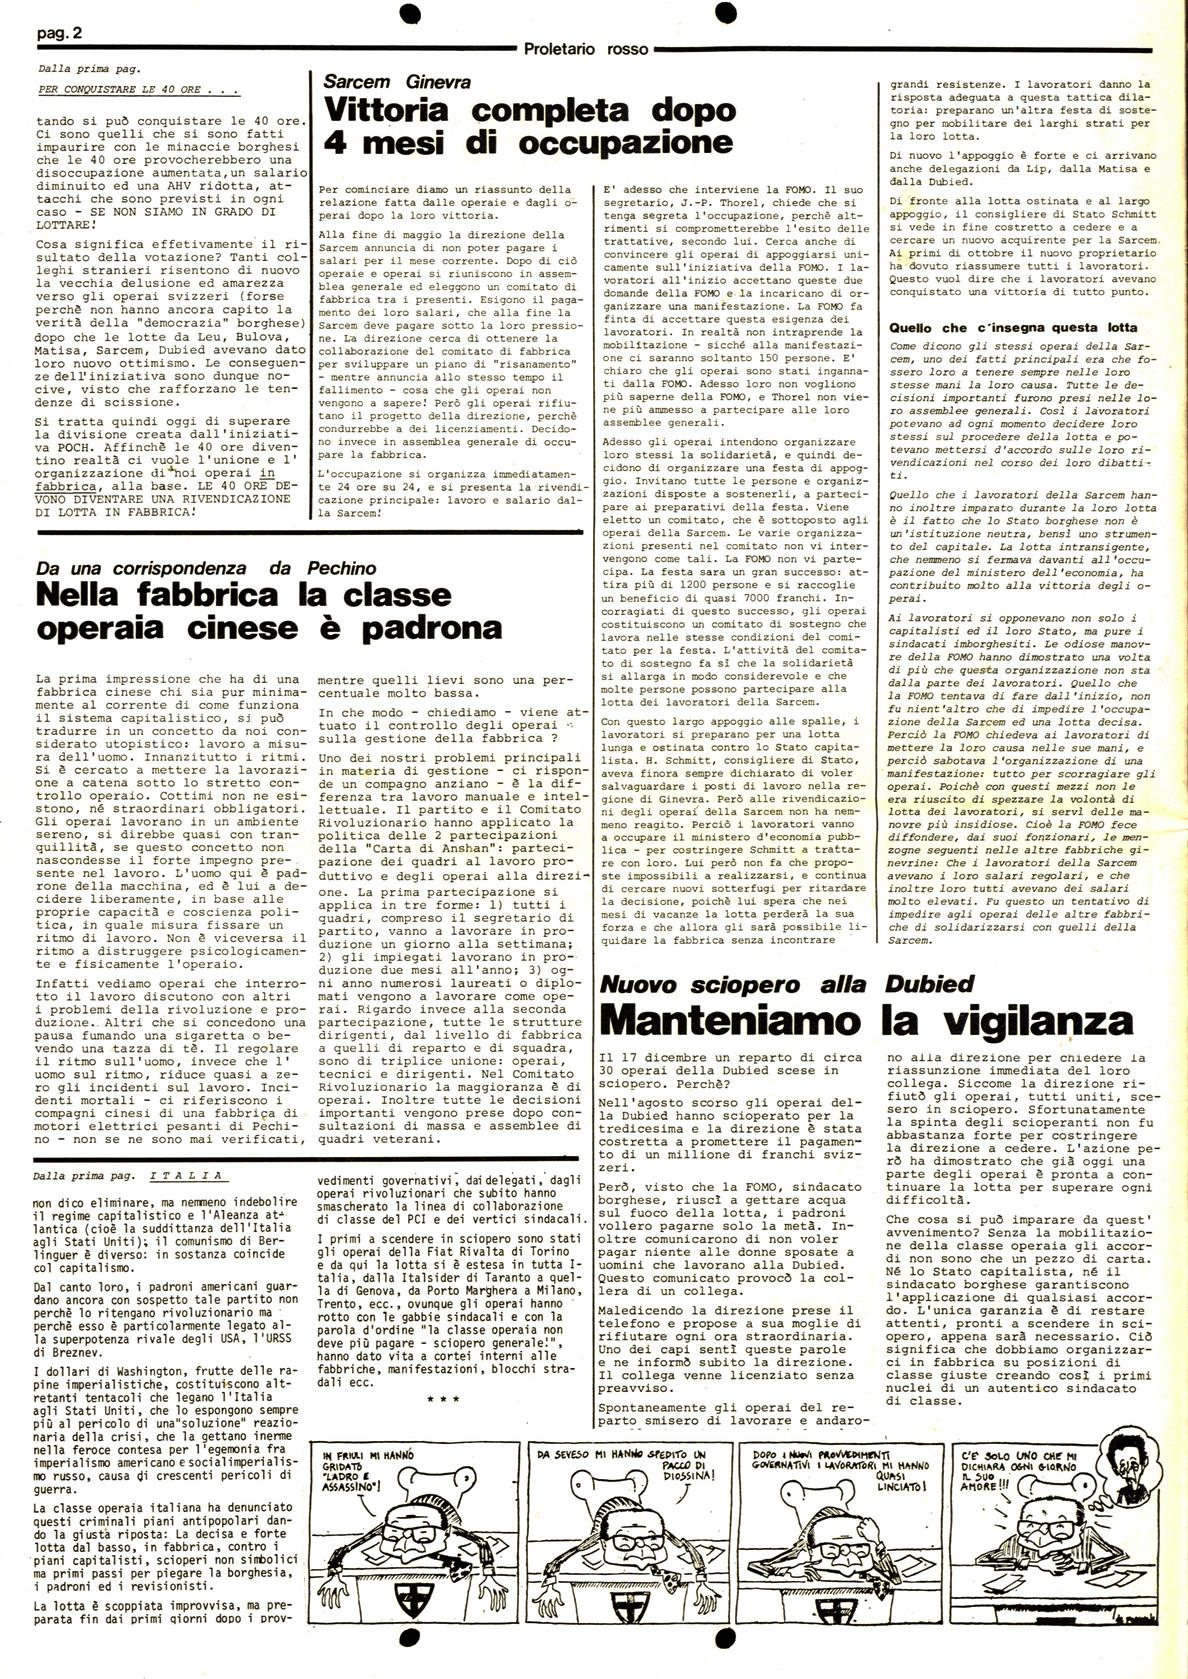 CH_KBML_Roter_Prolet_19770100_08